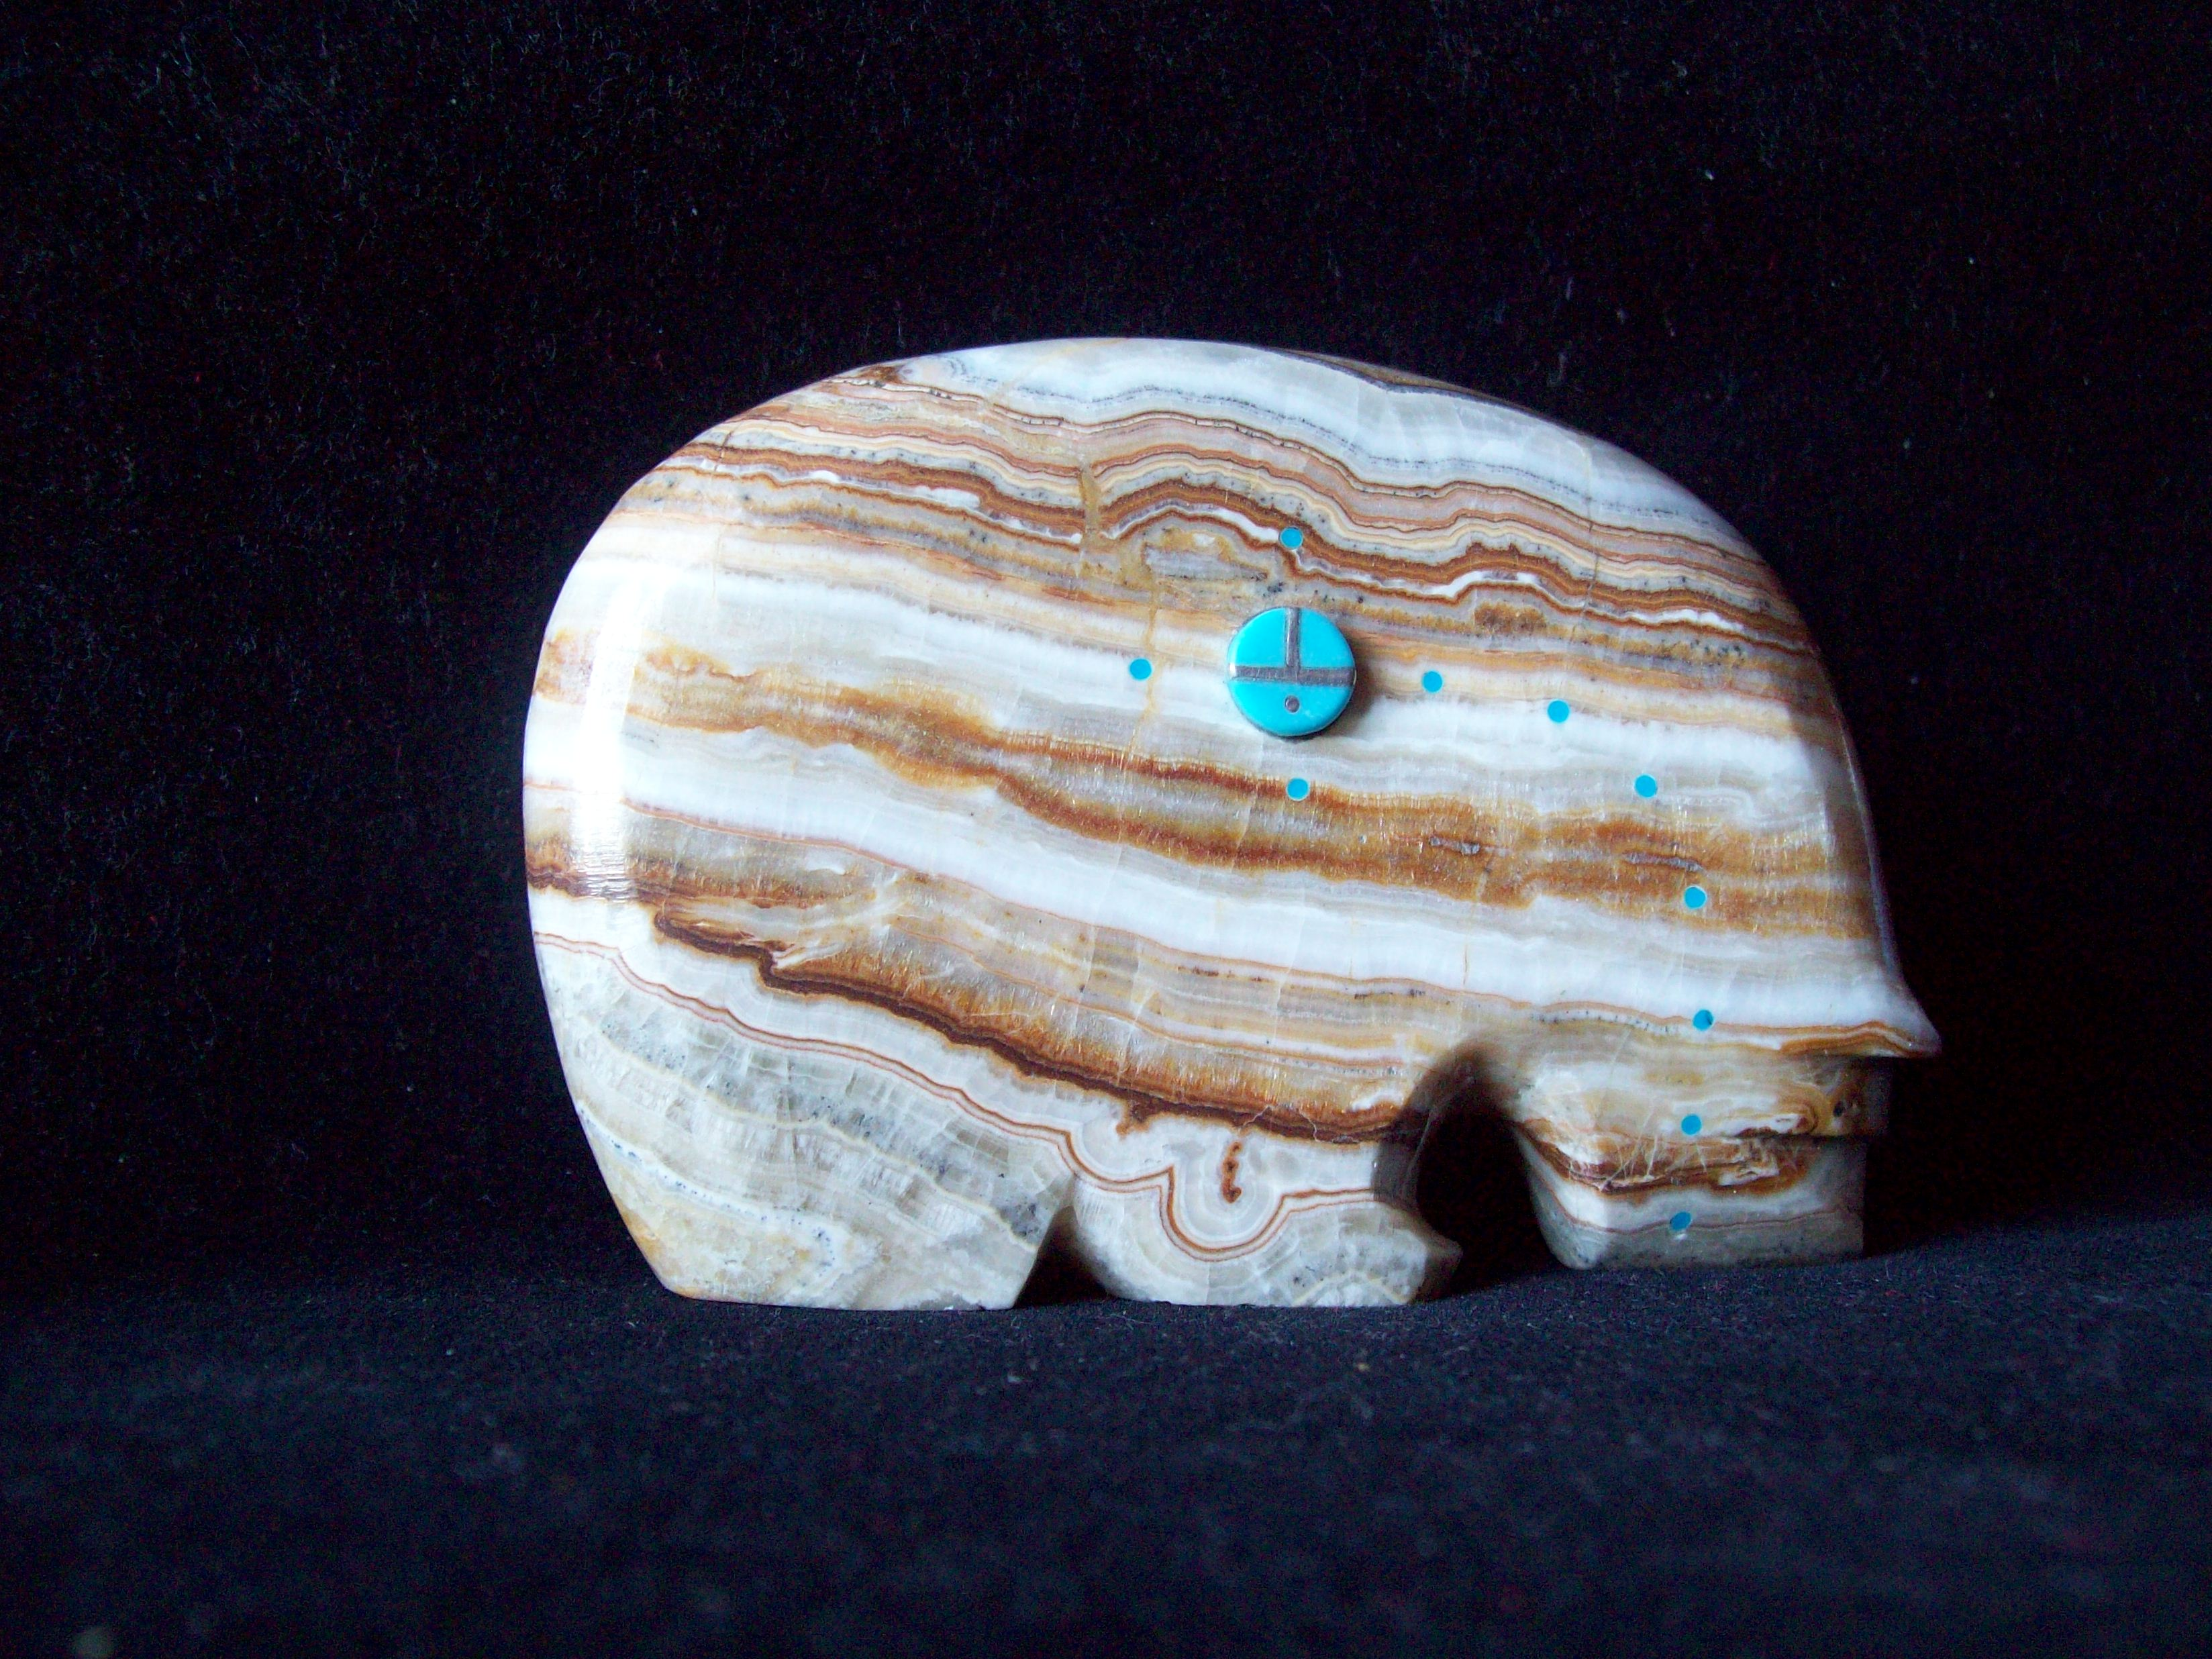 Handcarved varigated Vista Grande Onyx stone embellished with small spots of inlaid turquoise